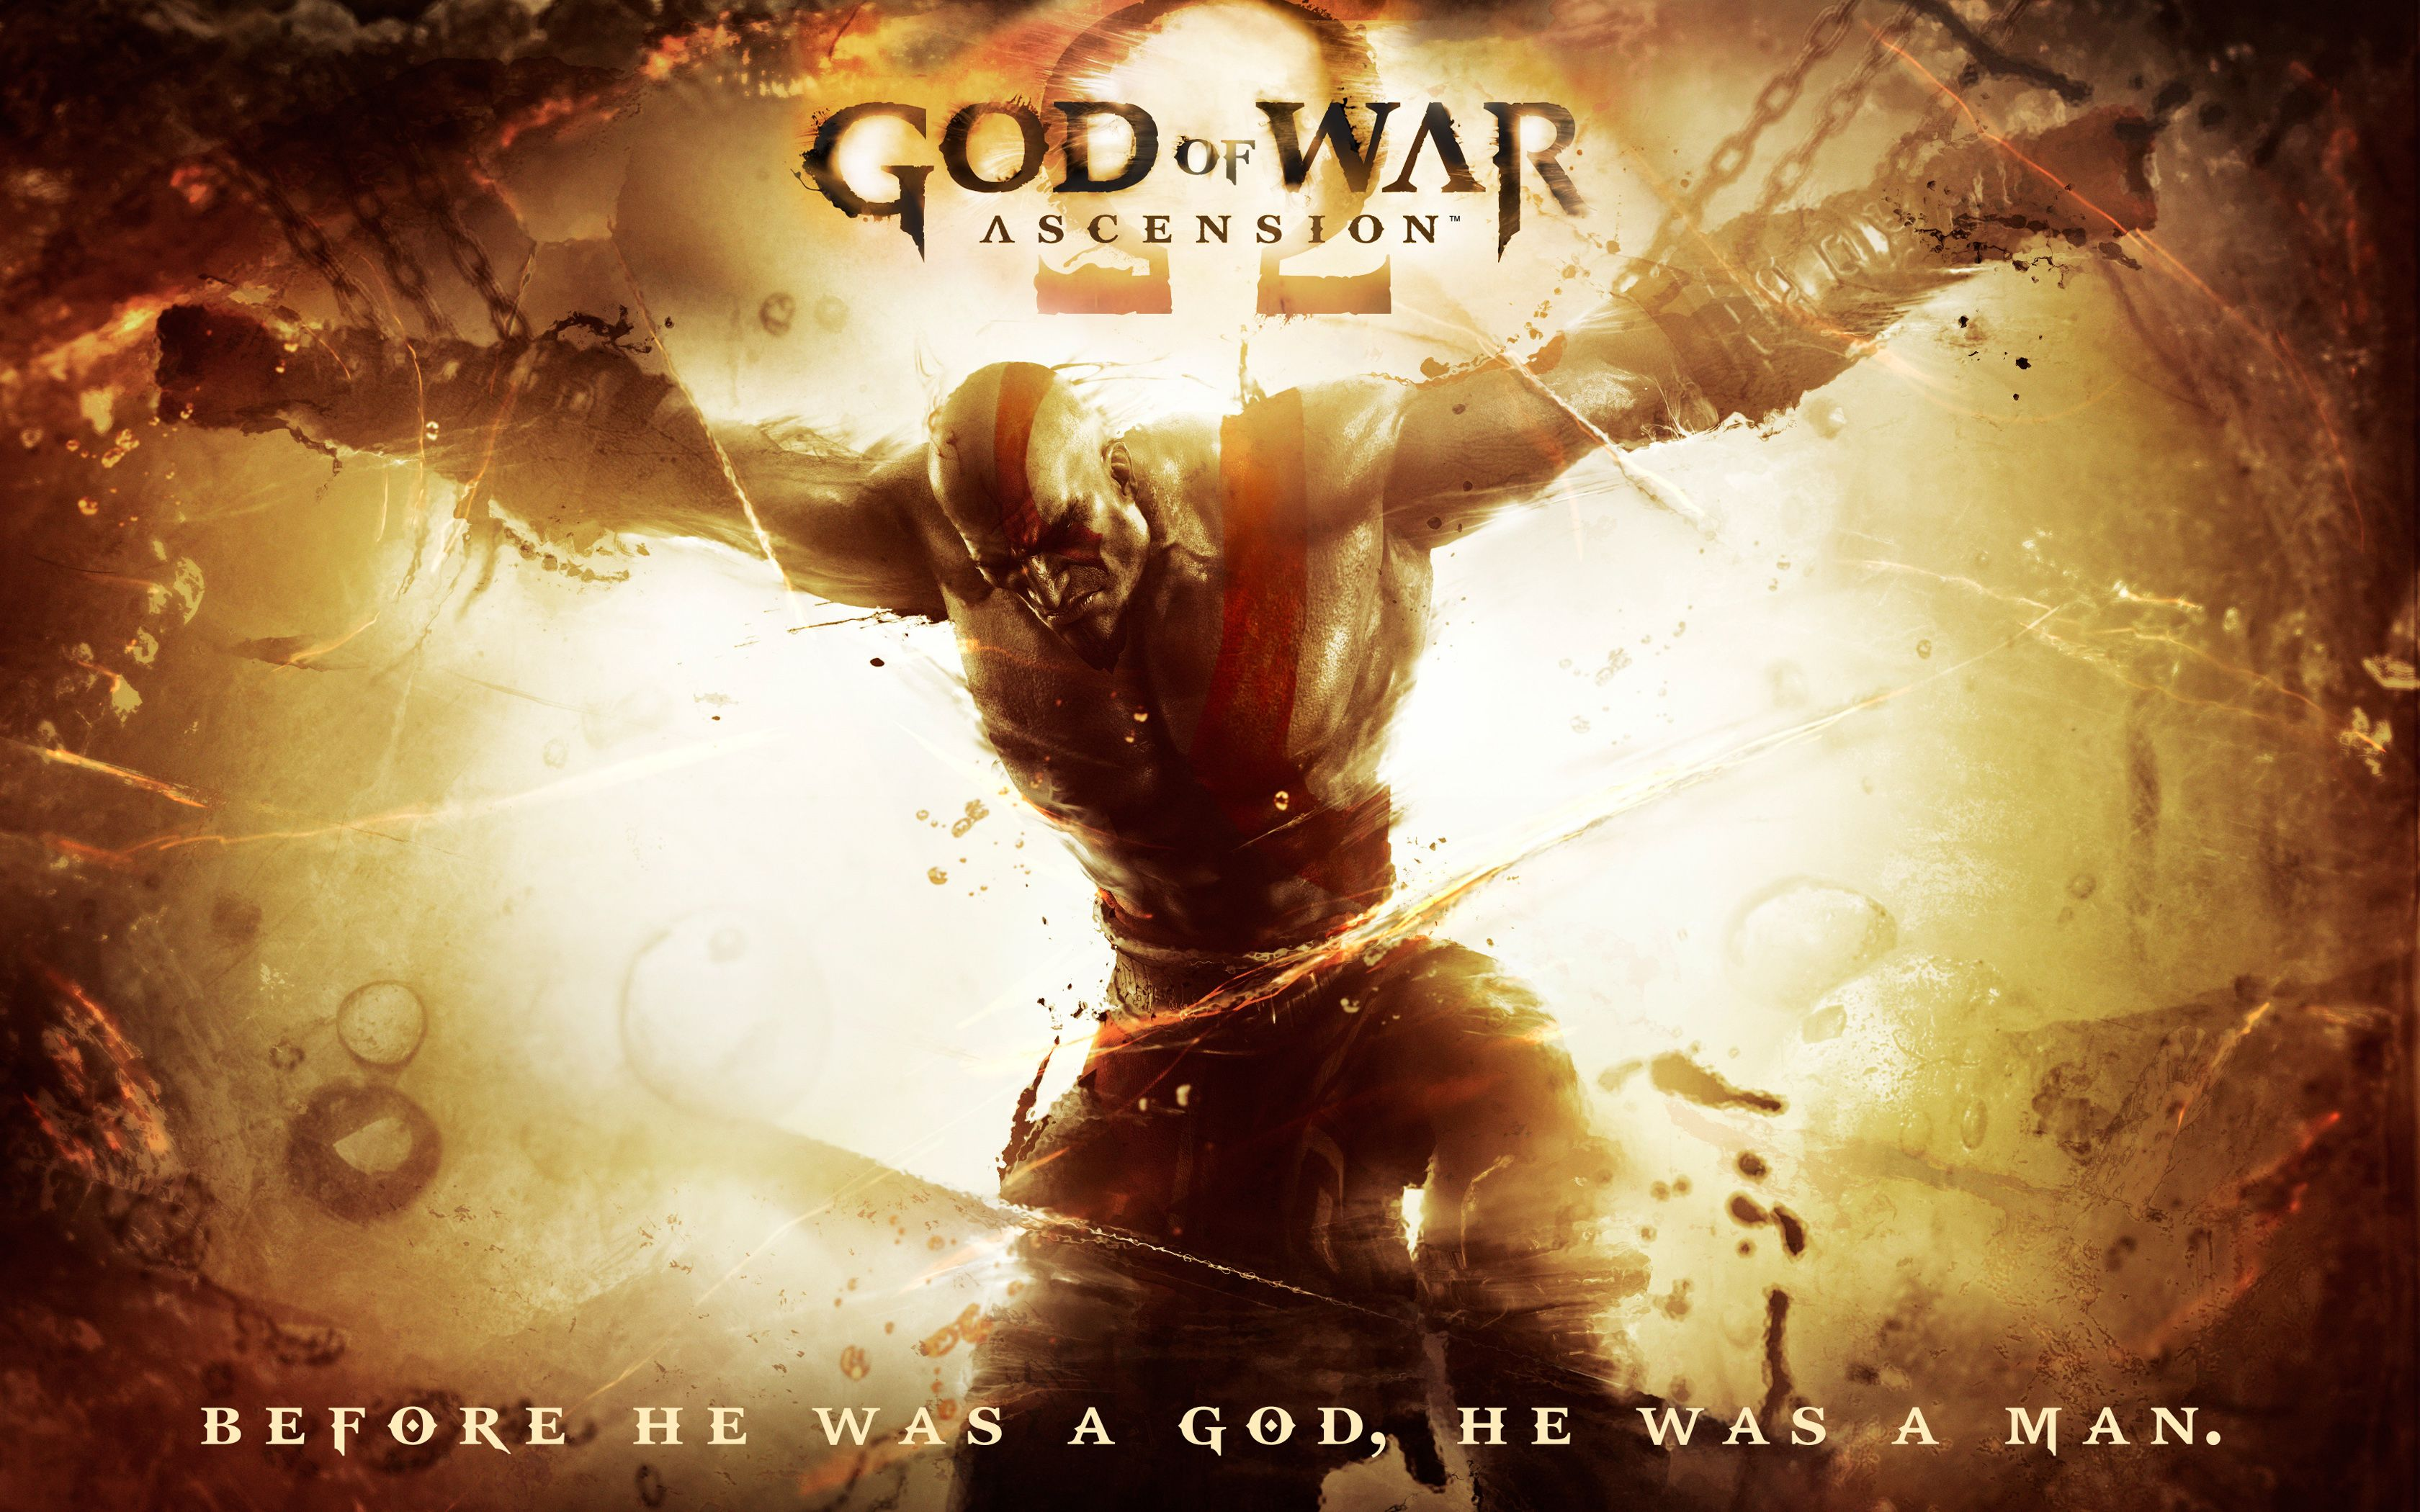 God Pictures God Of War 4 Ascension Wallpapers Hd Wallpapers